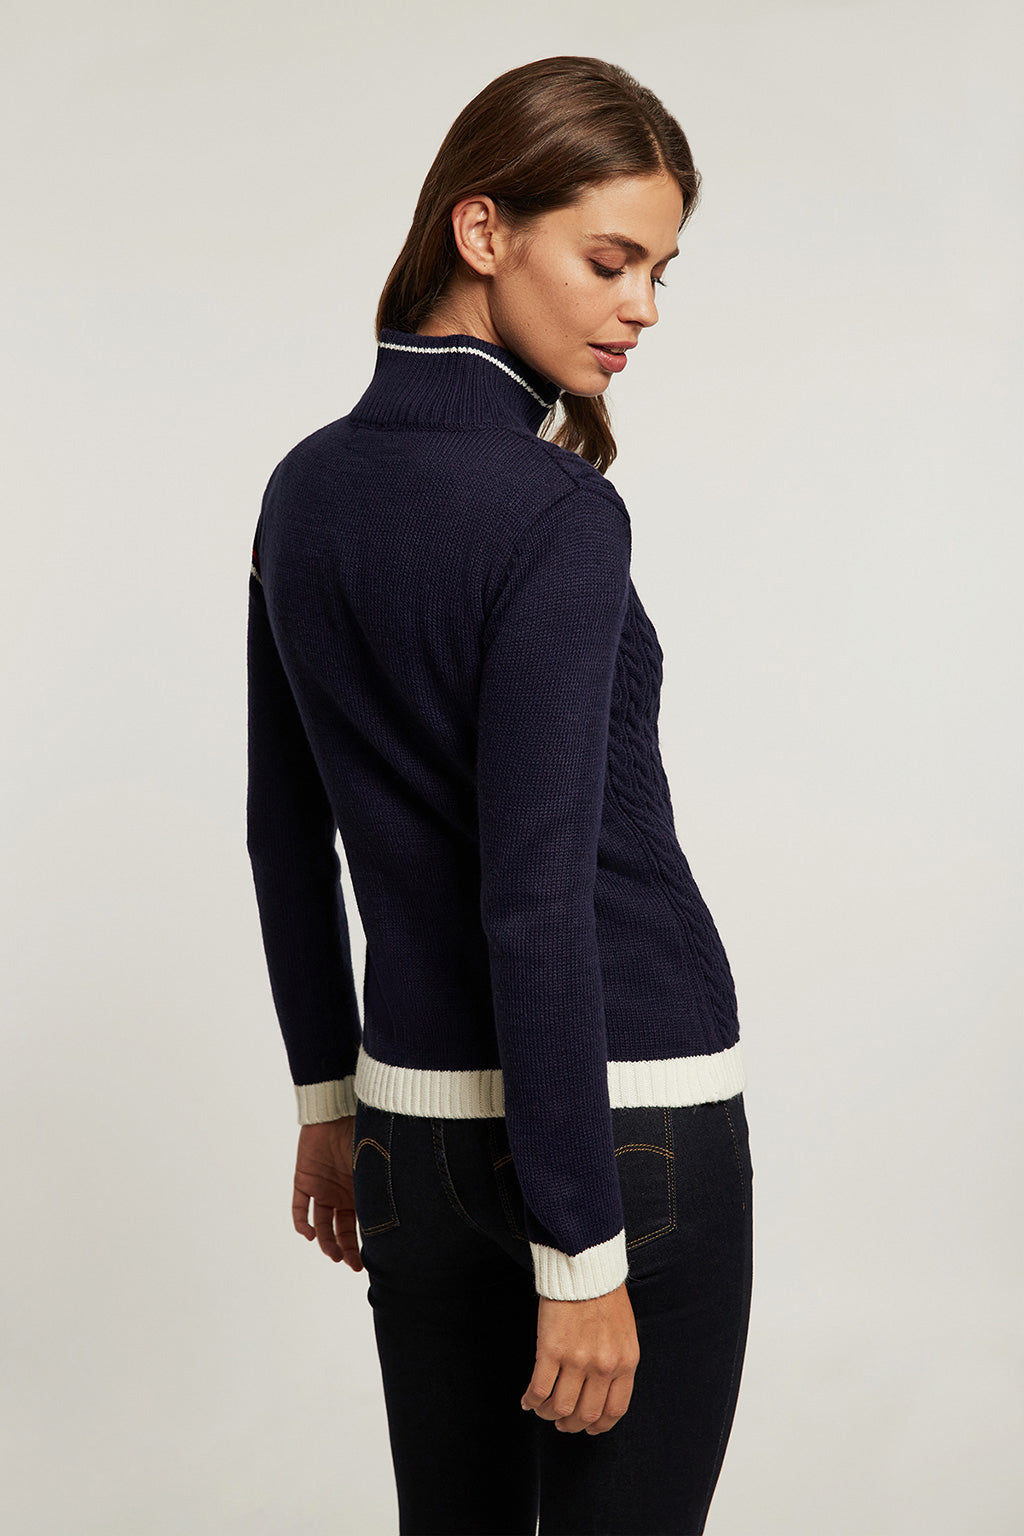 Nautical-inspired navy blue cardigan